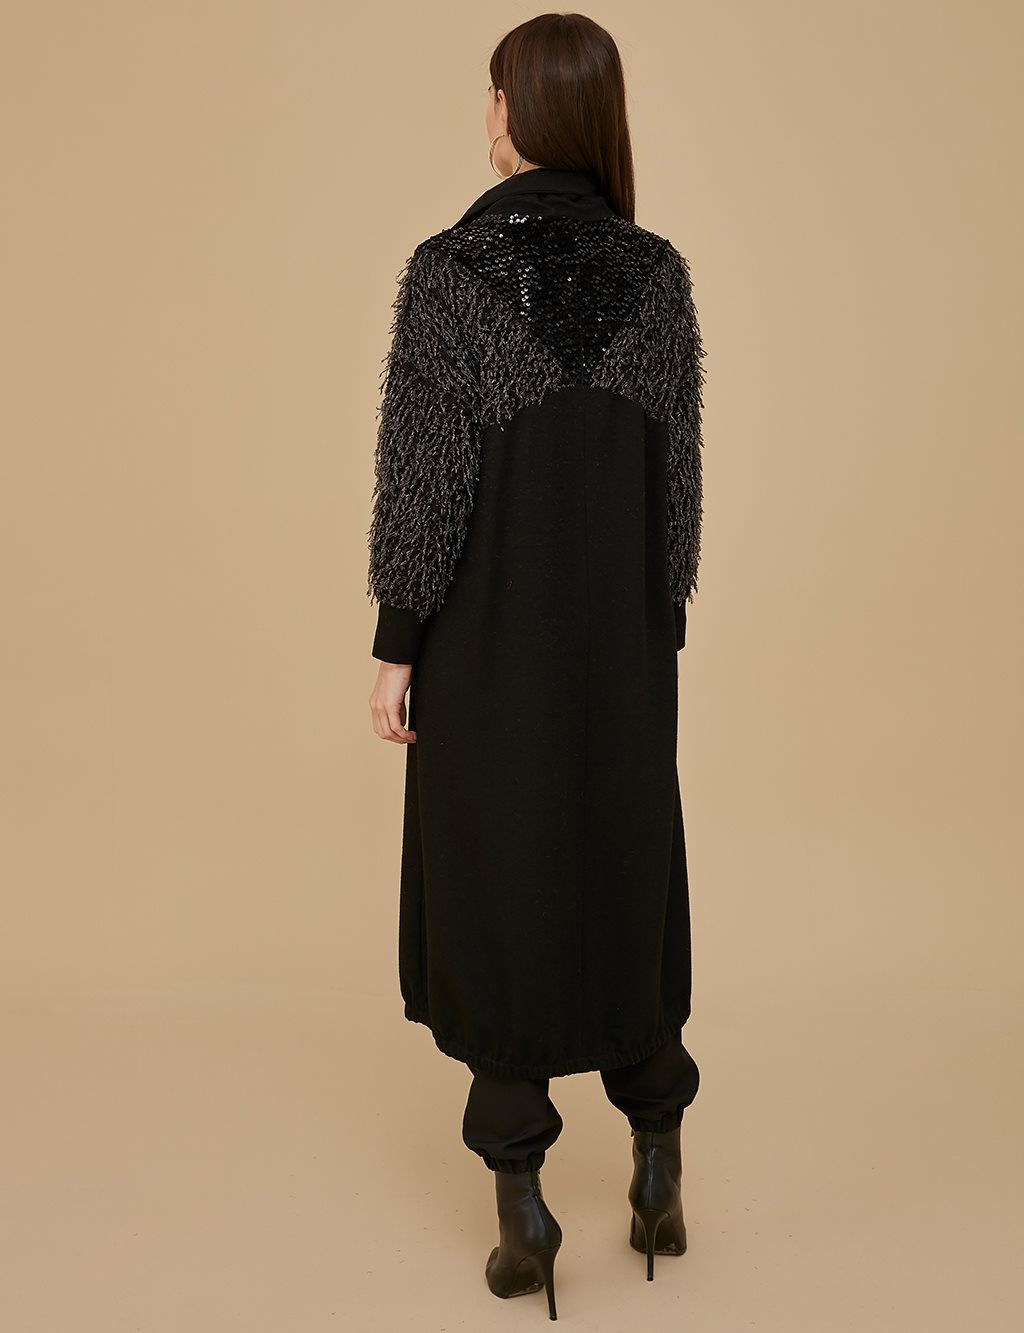 Sequin Detailed Overcoat A9 25025 Black